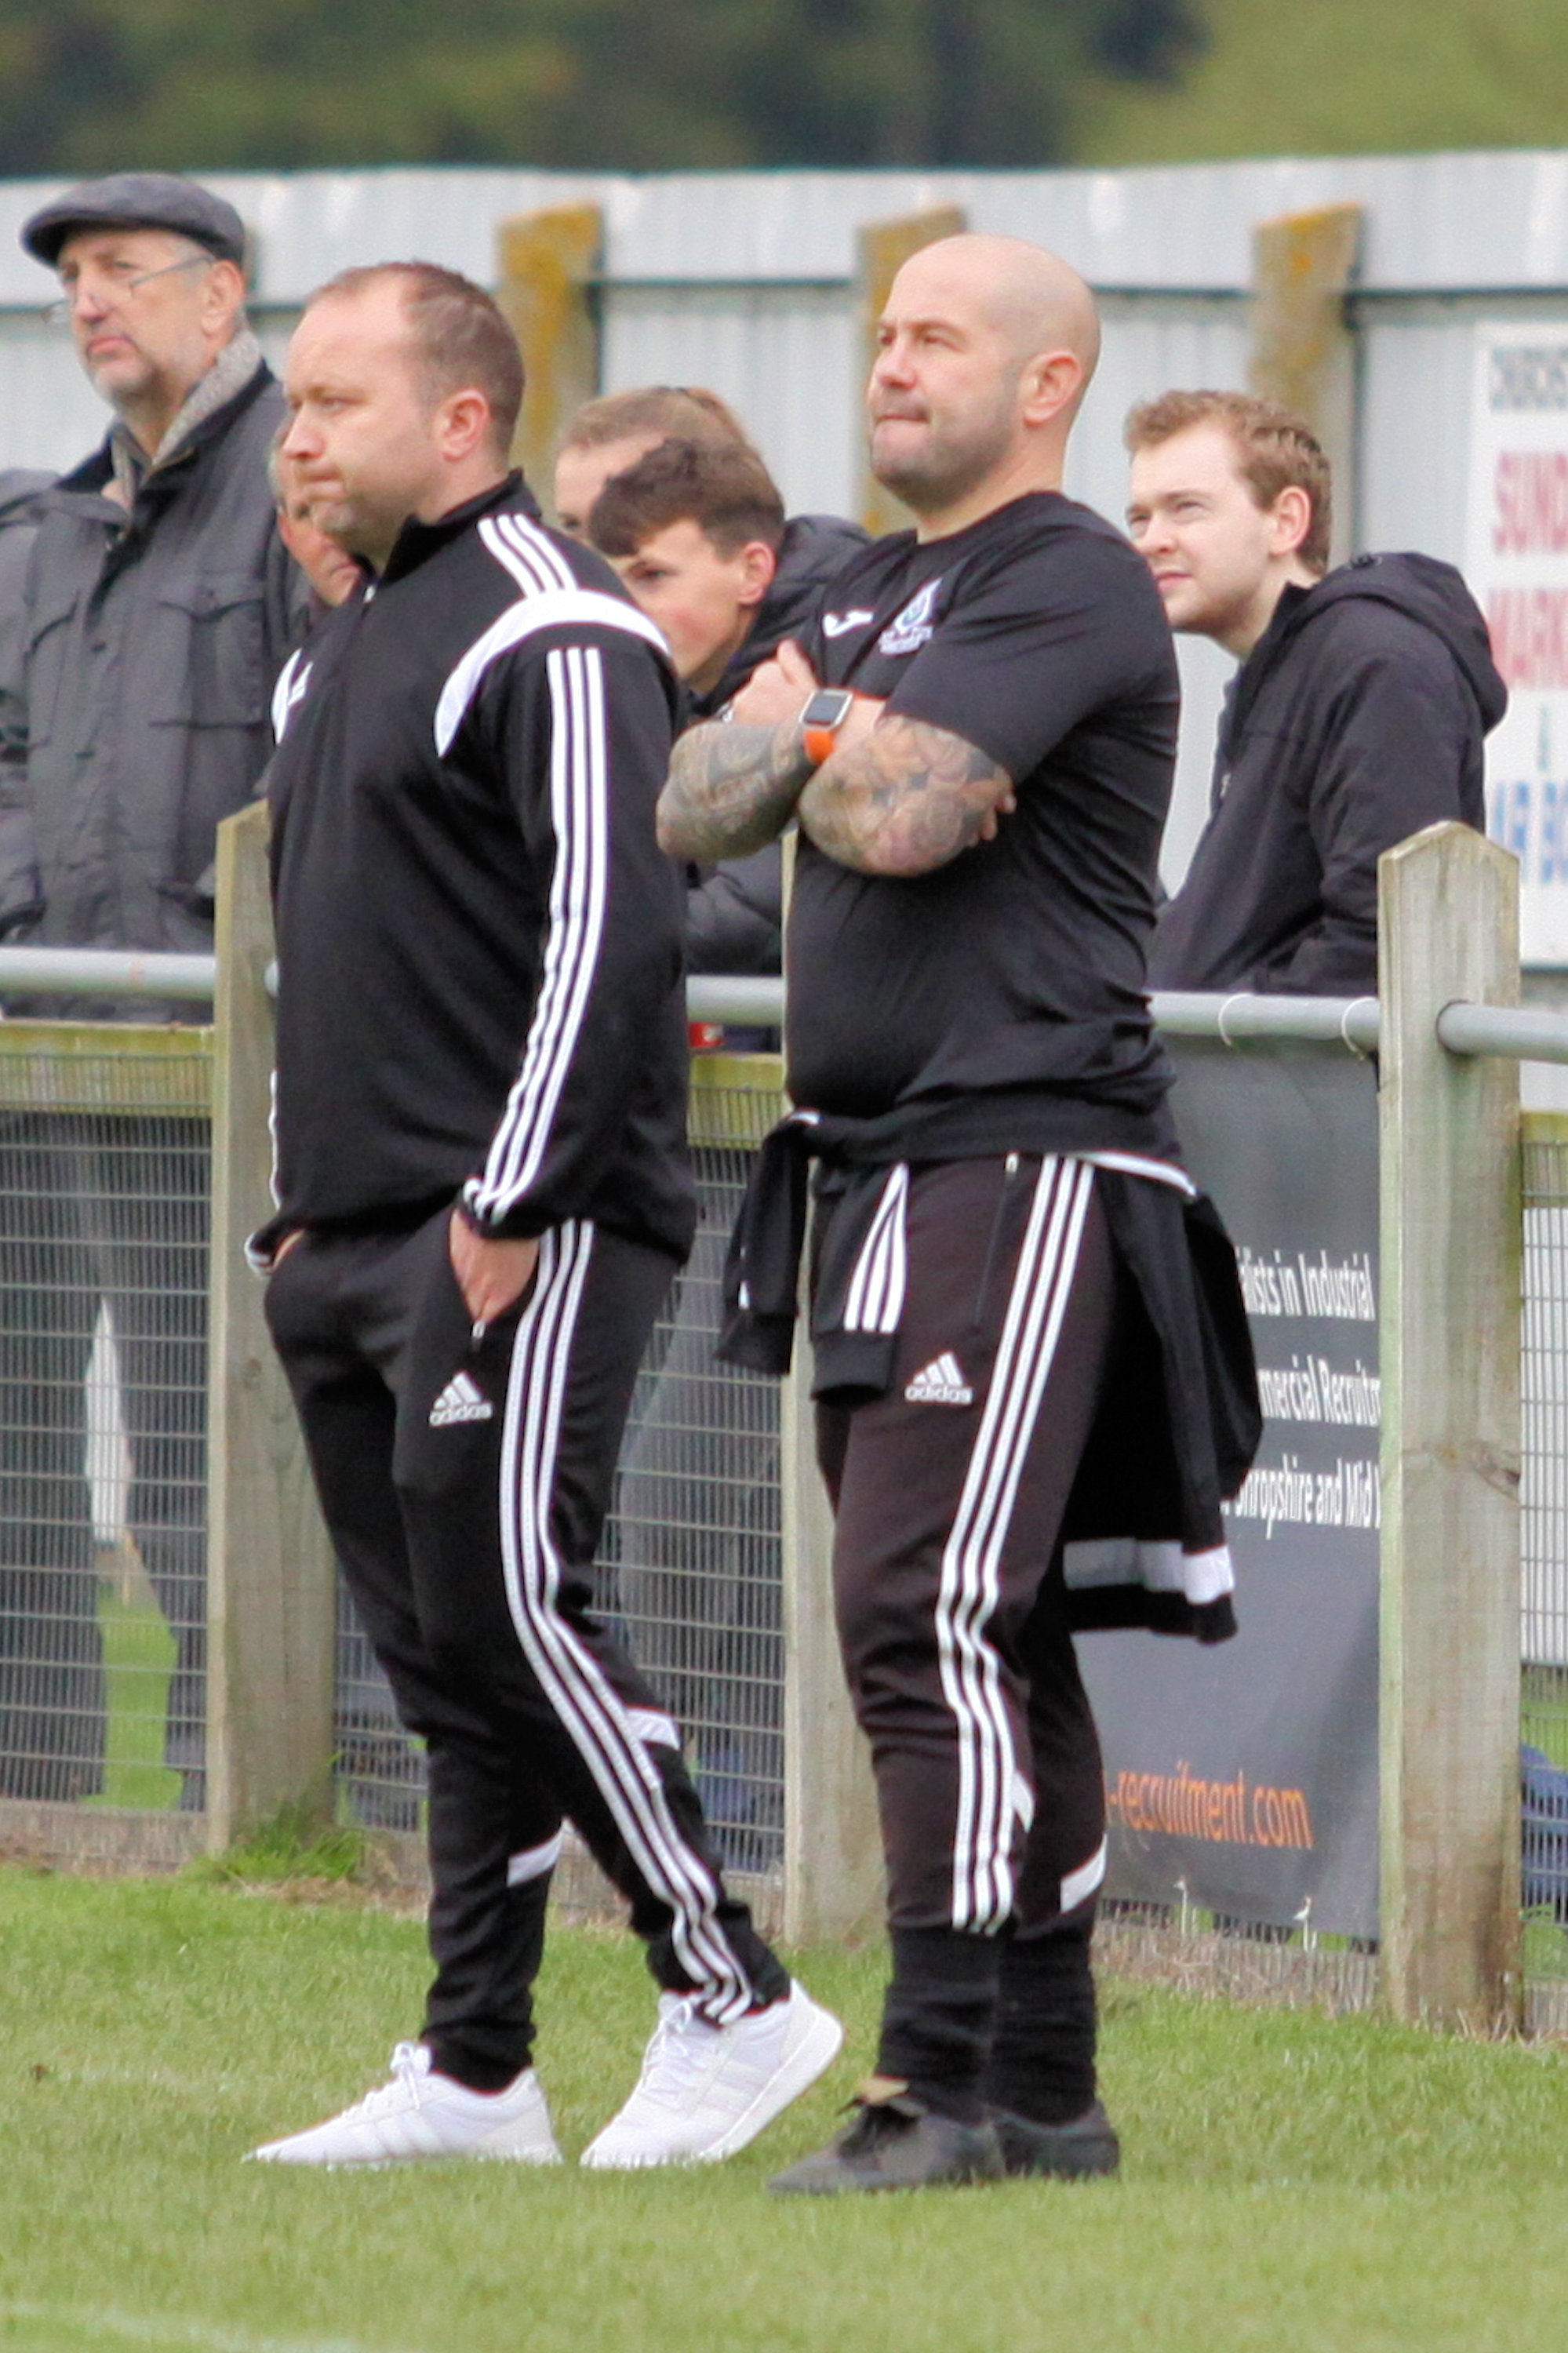 Shawbury United chairman Dave Richards was impressed by the performance of new signing David Jones. Photo: Keith Gluyas